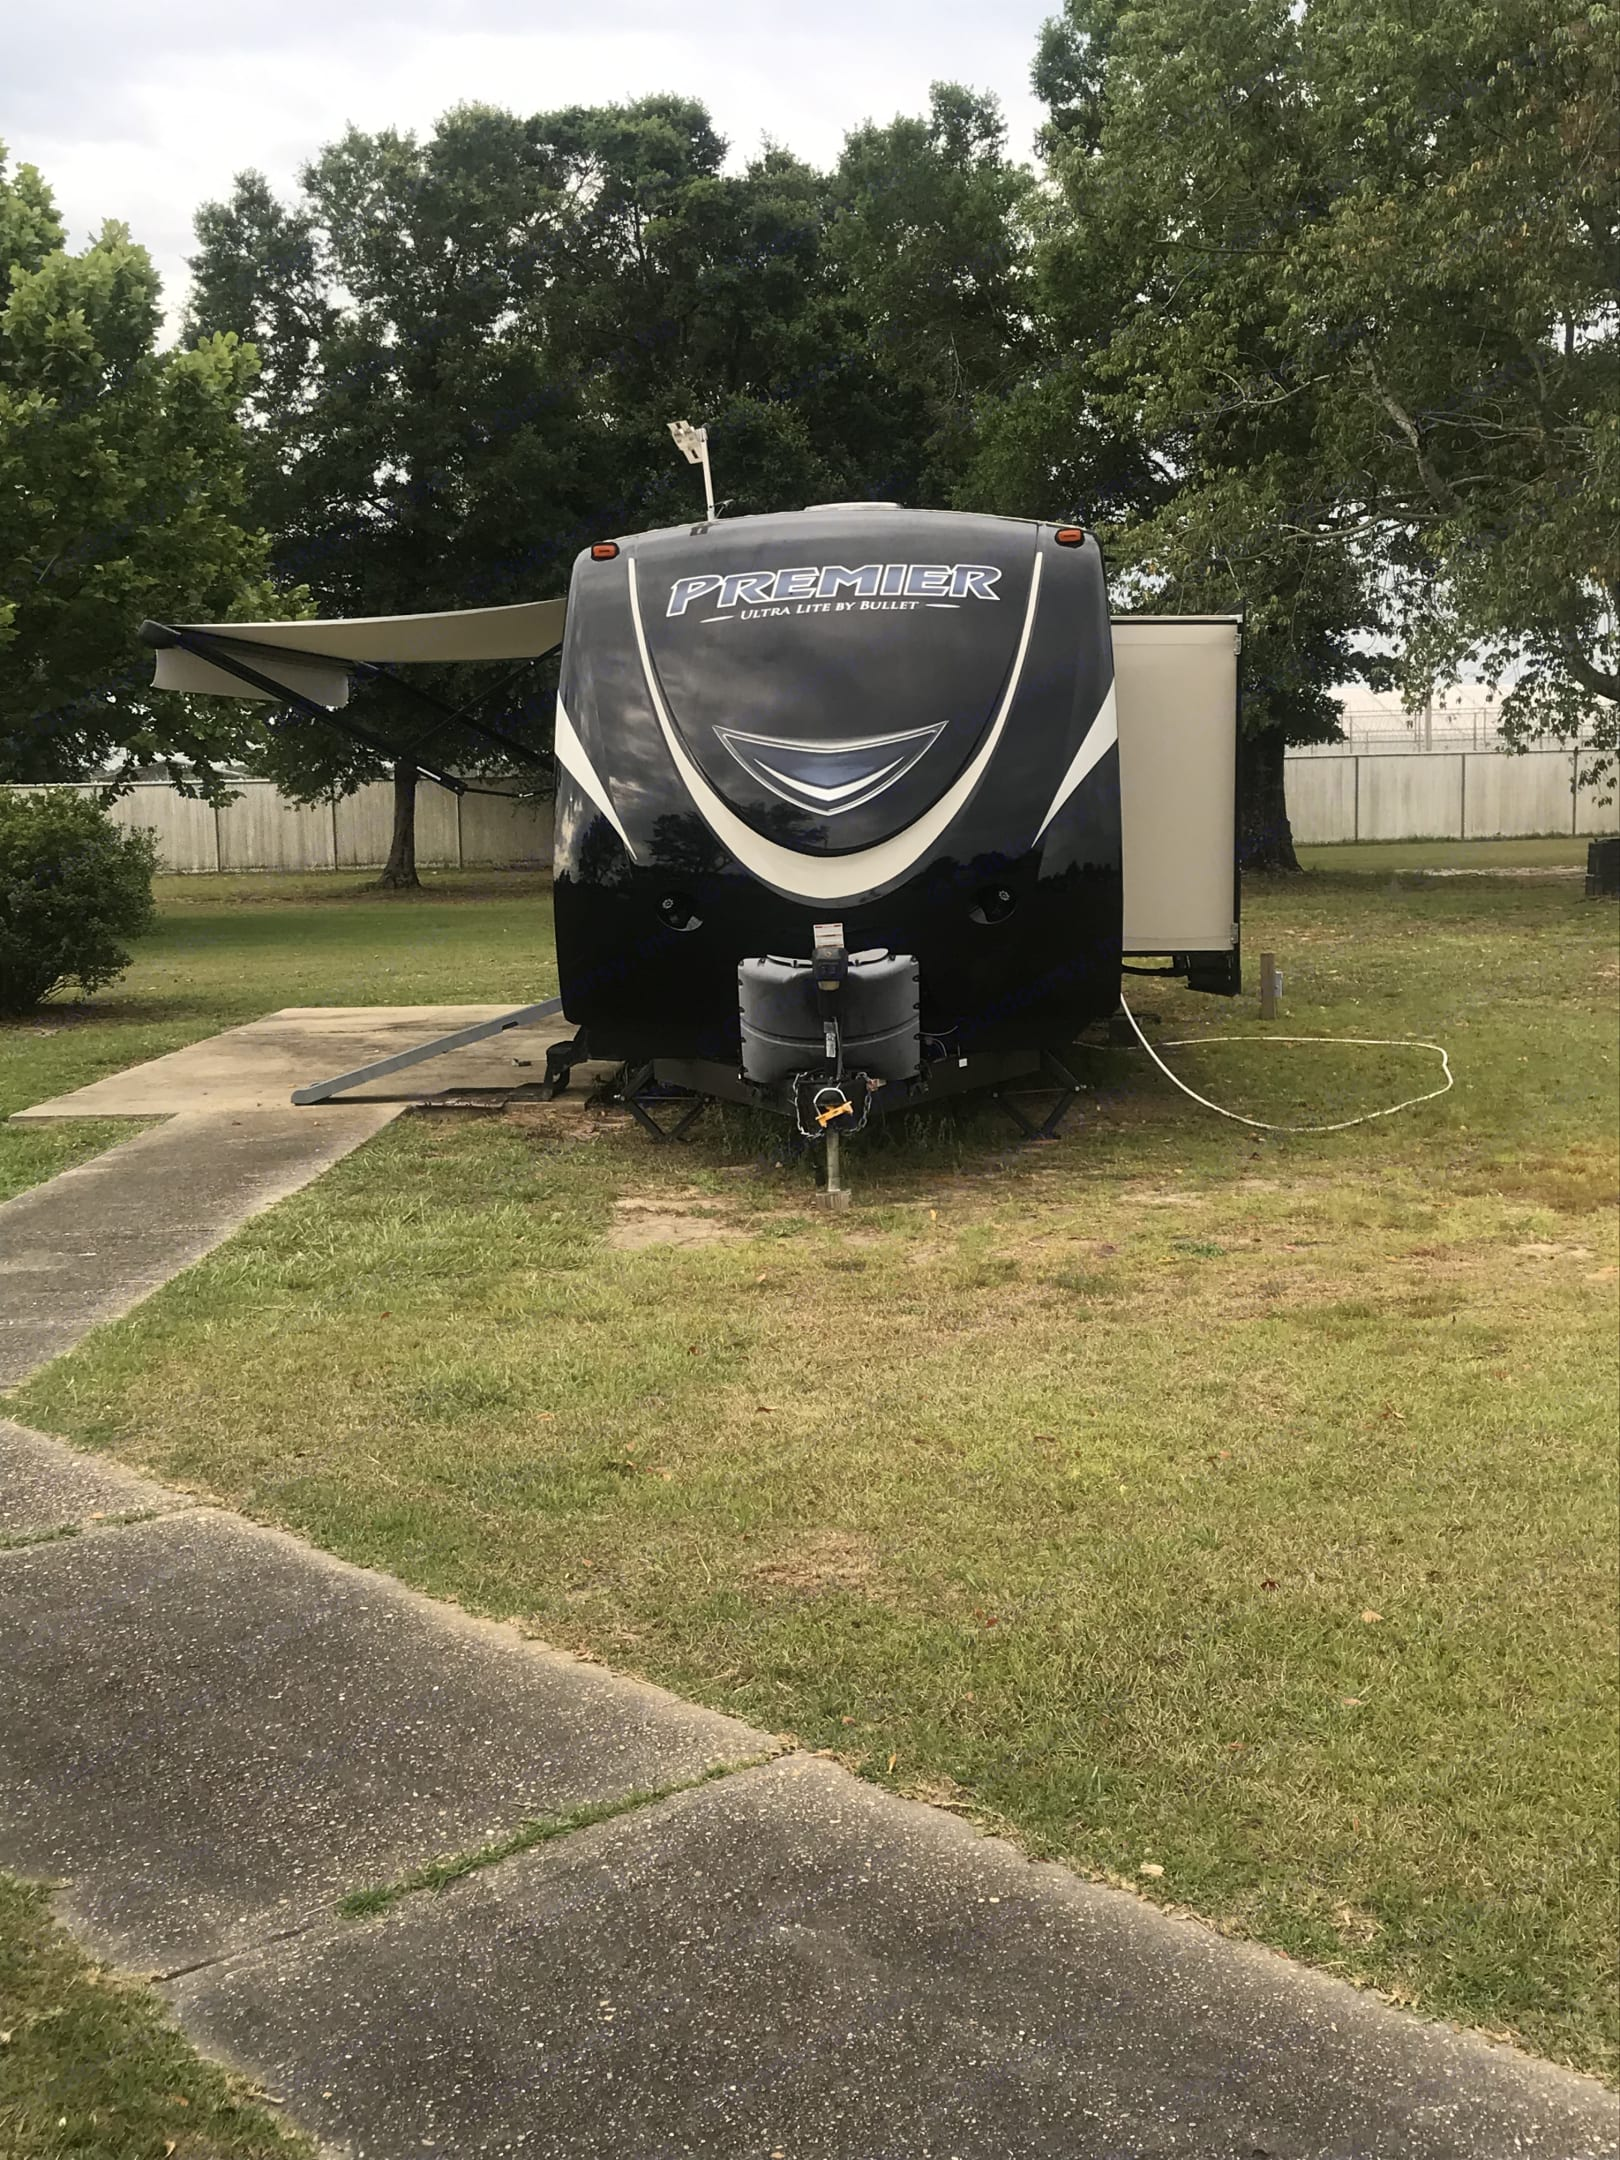 Front view of trailer: Awning extended, propane, electric jack and first slide. Keystone Bullet Premier 2016